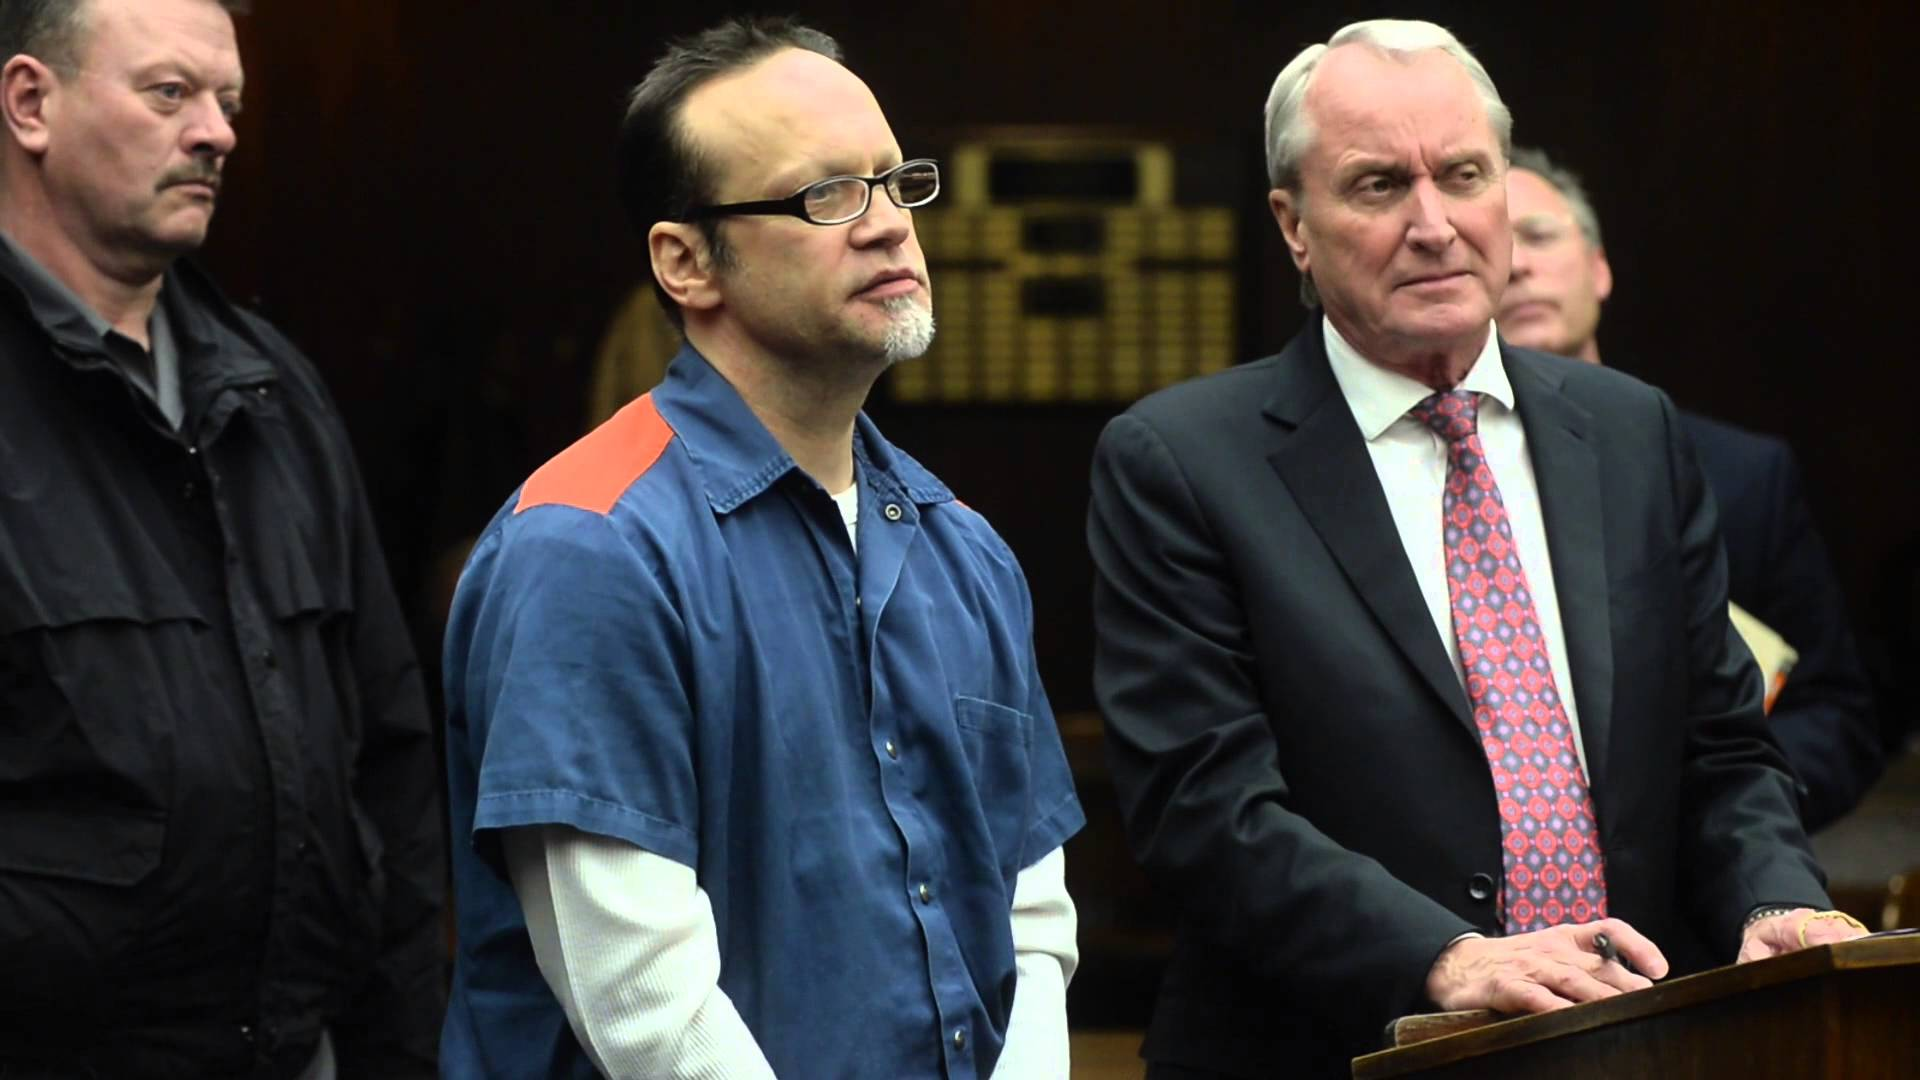 He Pleads Guilty To Taking The Life Of His Cellmate. When He Said Why, Chills Ran Down My Spine